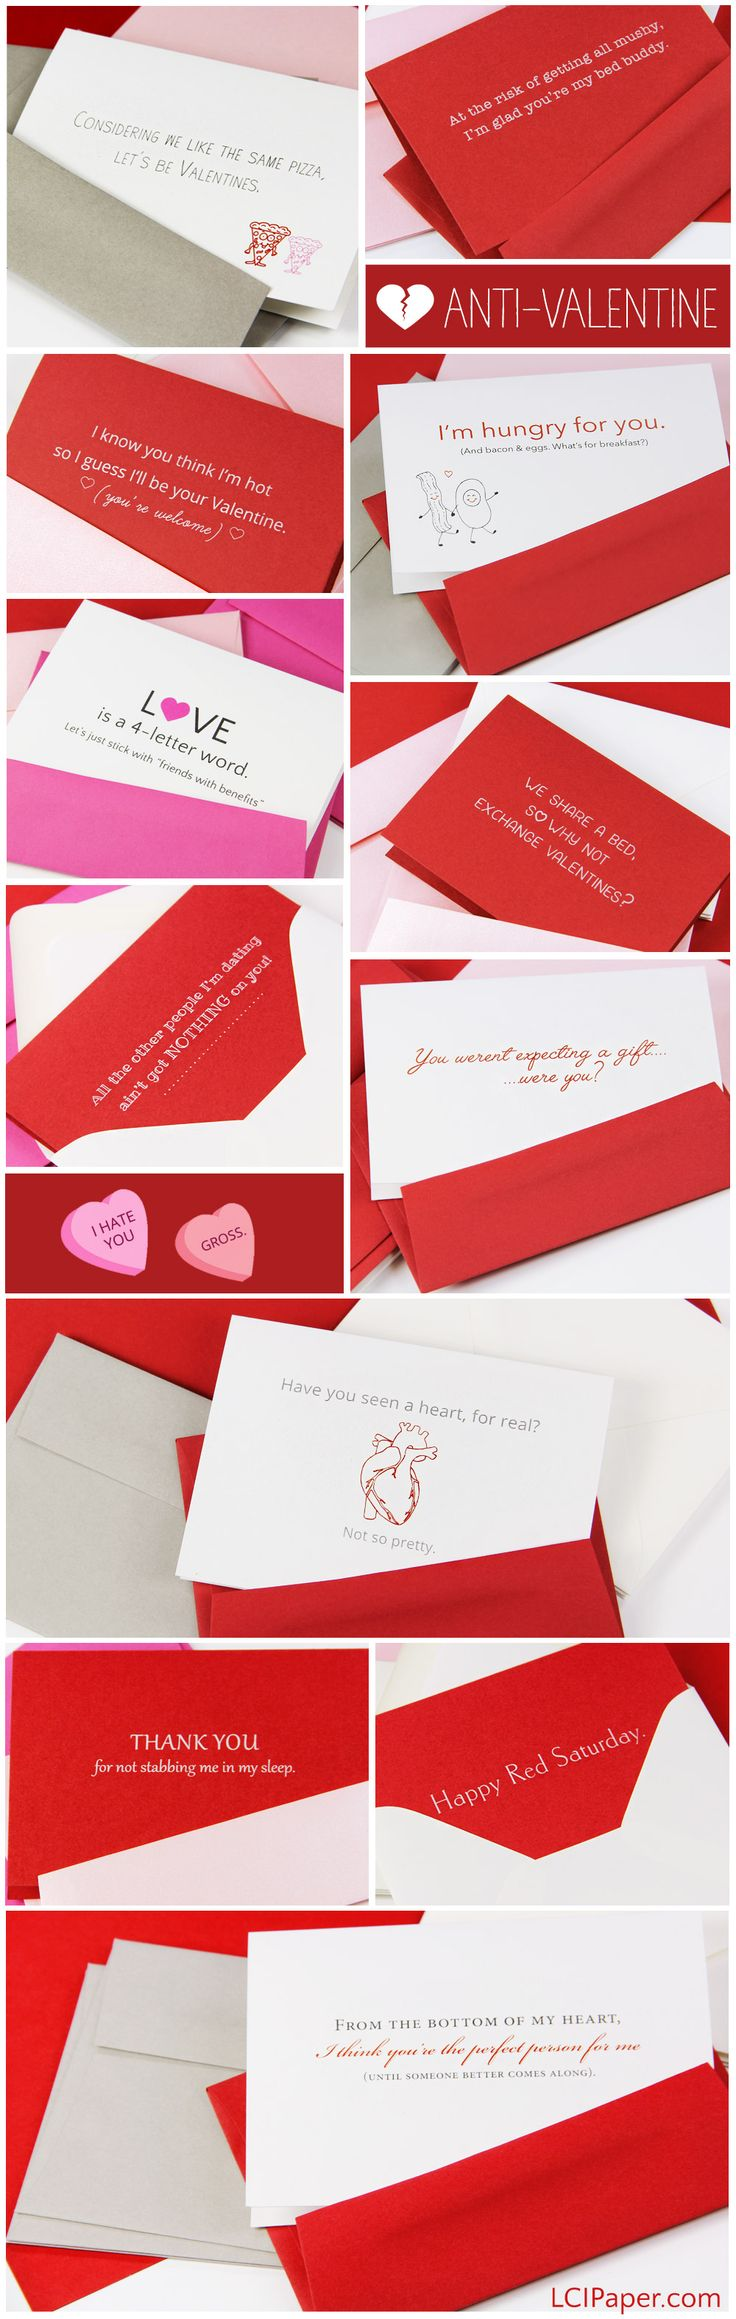 Best 34 Greeting Cards Inspiration images on Pinterest | Greeting ...